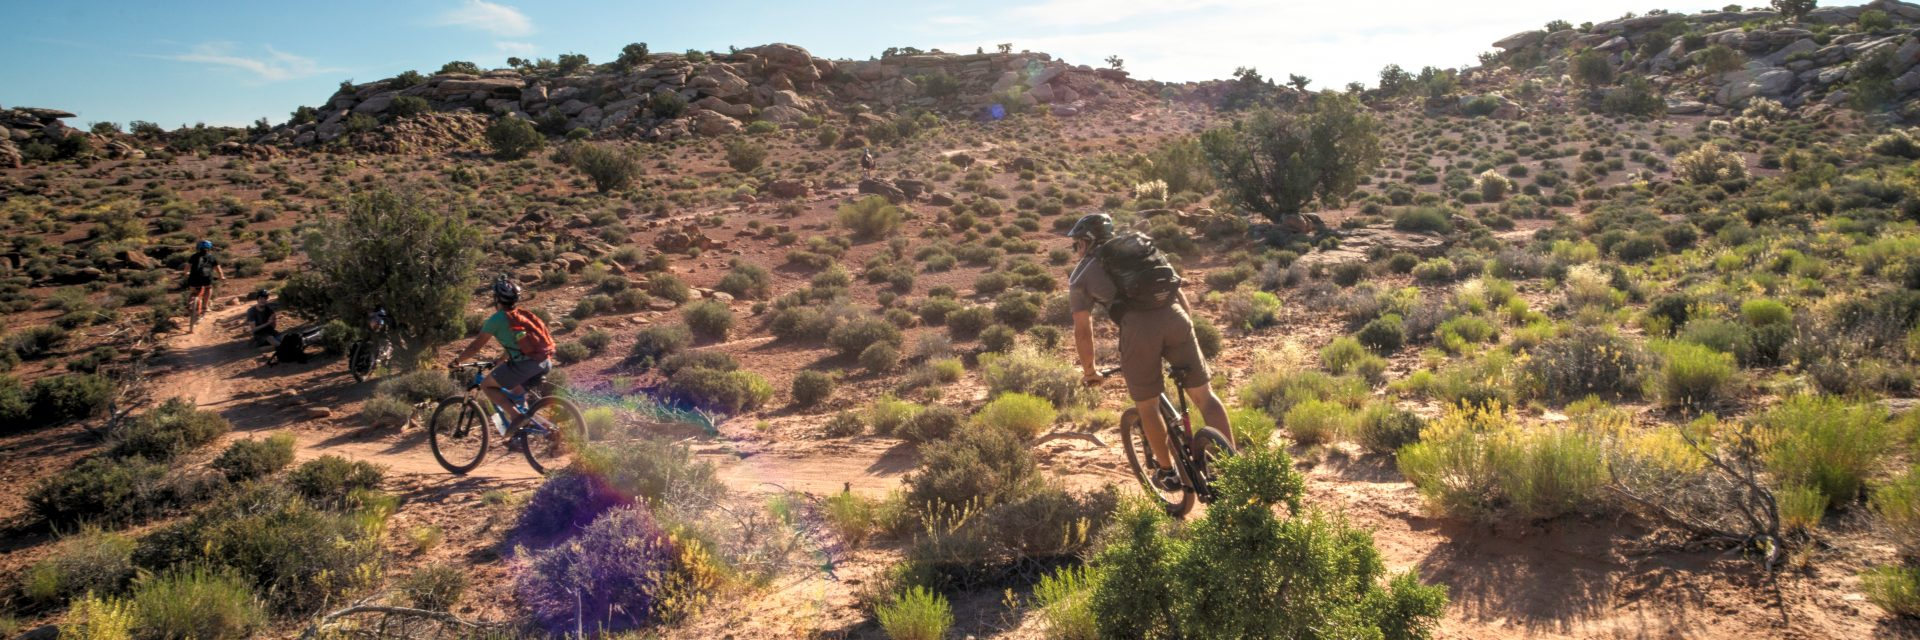 A guide follows a young rider on a singletrack section of the Courthouse Loop Trail guided mountain bike tour in Moab UT